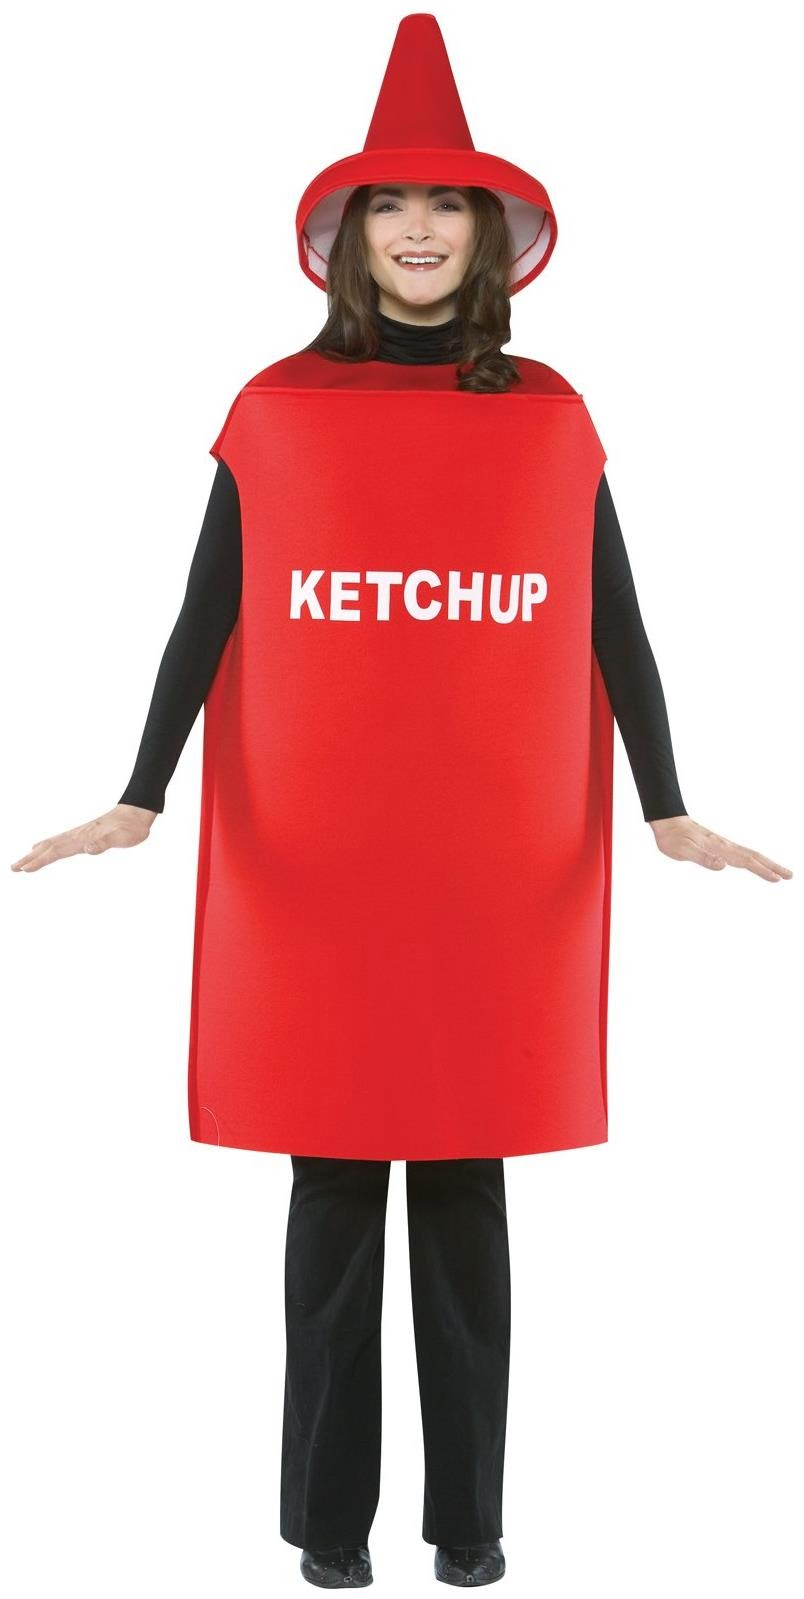 Ketchup Costume